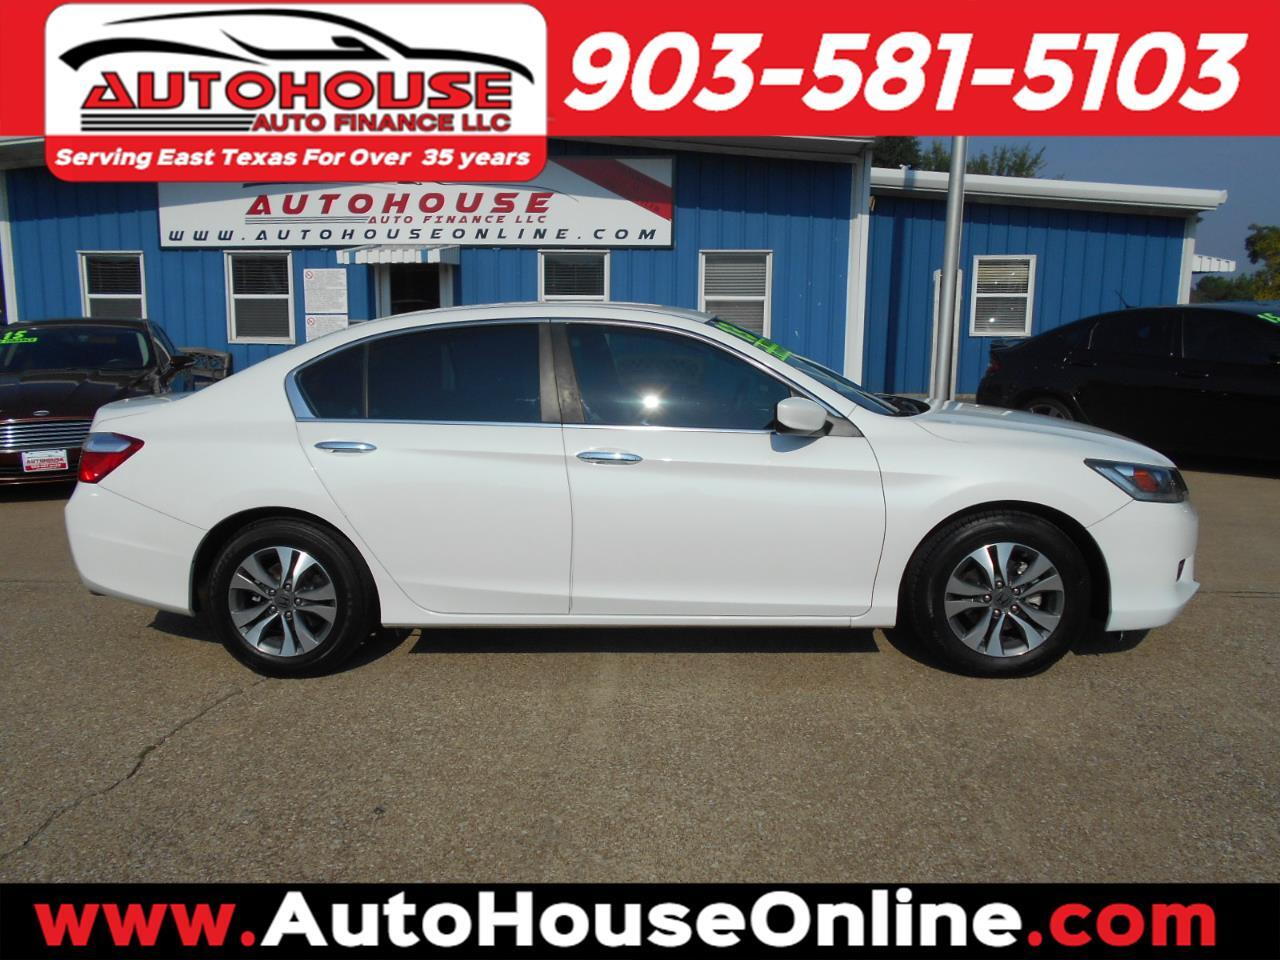 Honda Tyler Tx >> Used 2013 Honda Accord Lx Sedan Cvt For Sale In Tyler Tx